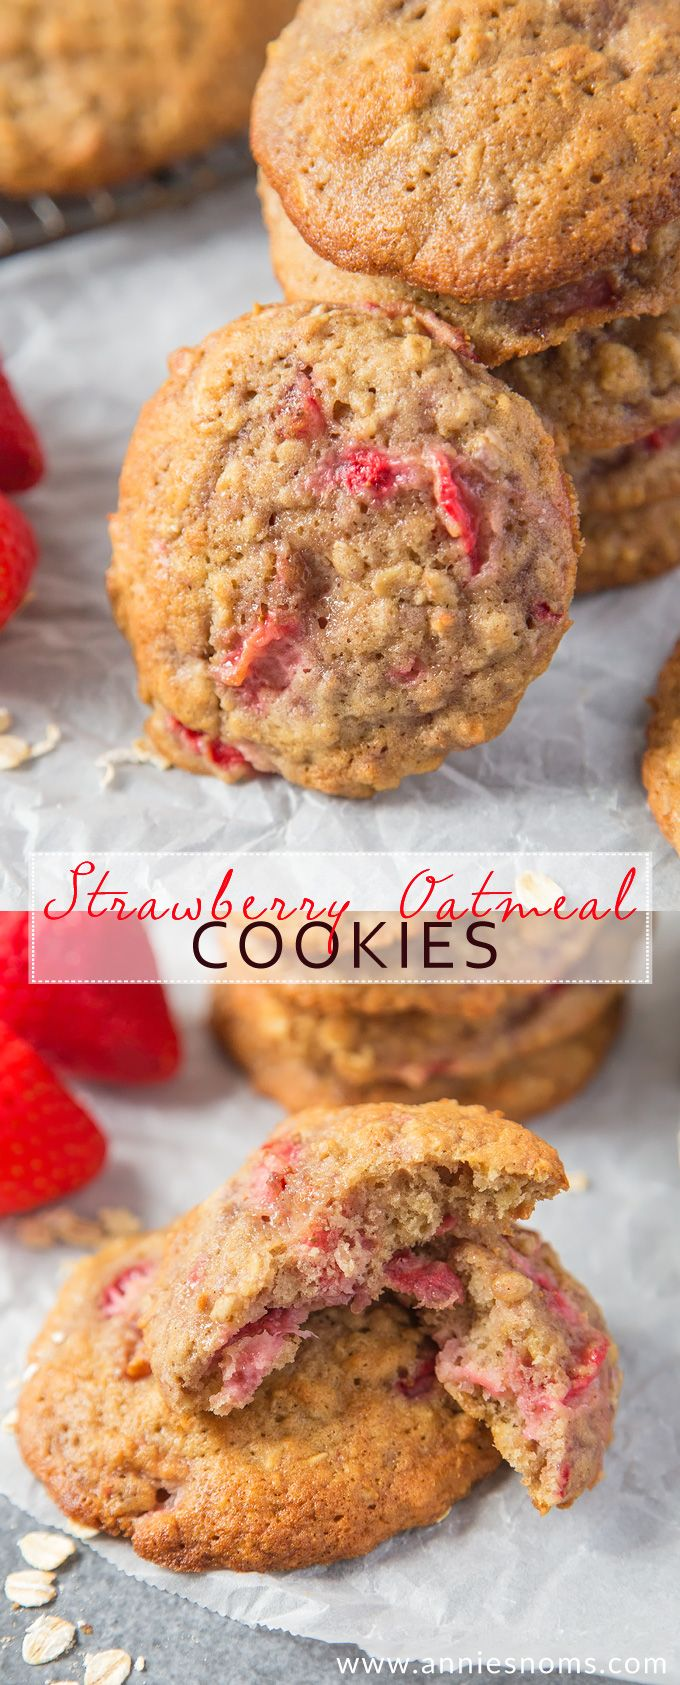 These soft and chewy Strawberry Oatmeal Cookies are jam packed with flavour and plenty of fresh strawberries! The perfect accompaniment to your afternoon coffee!